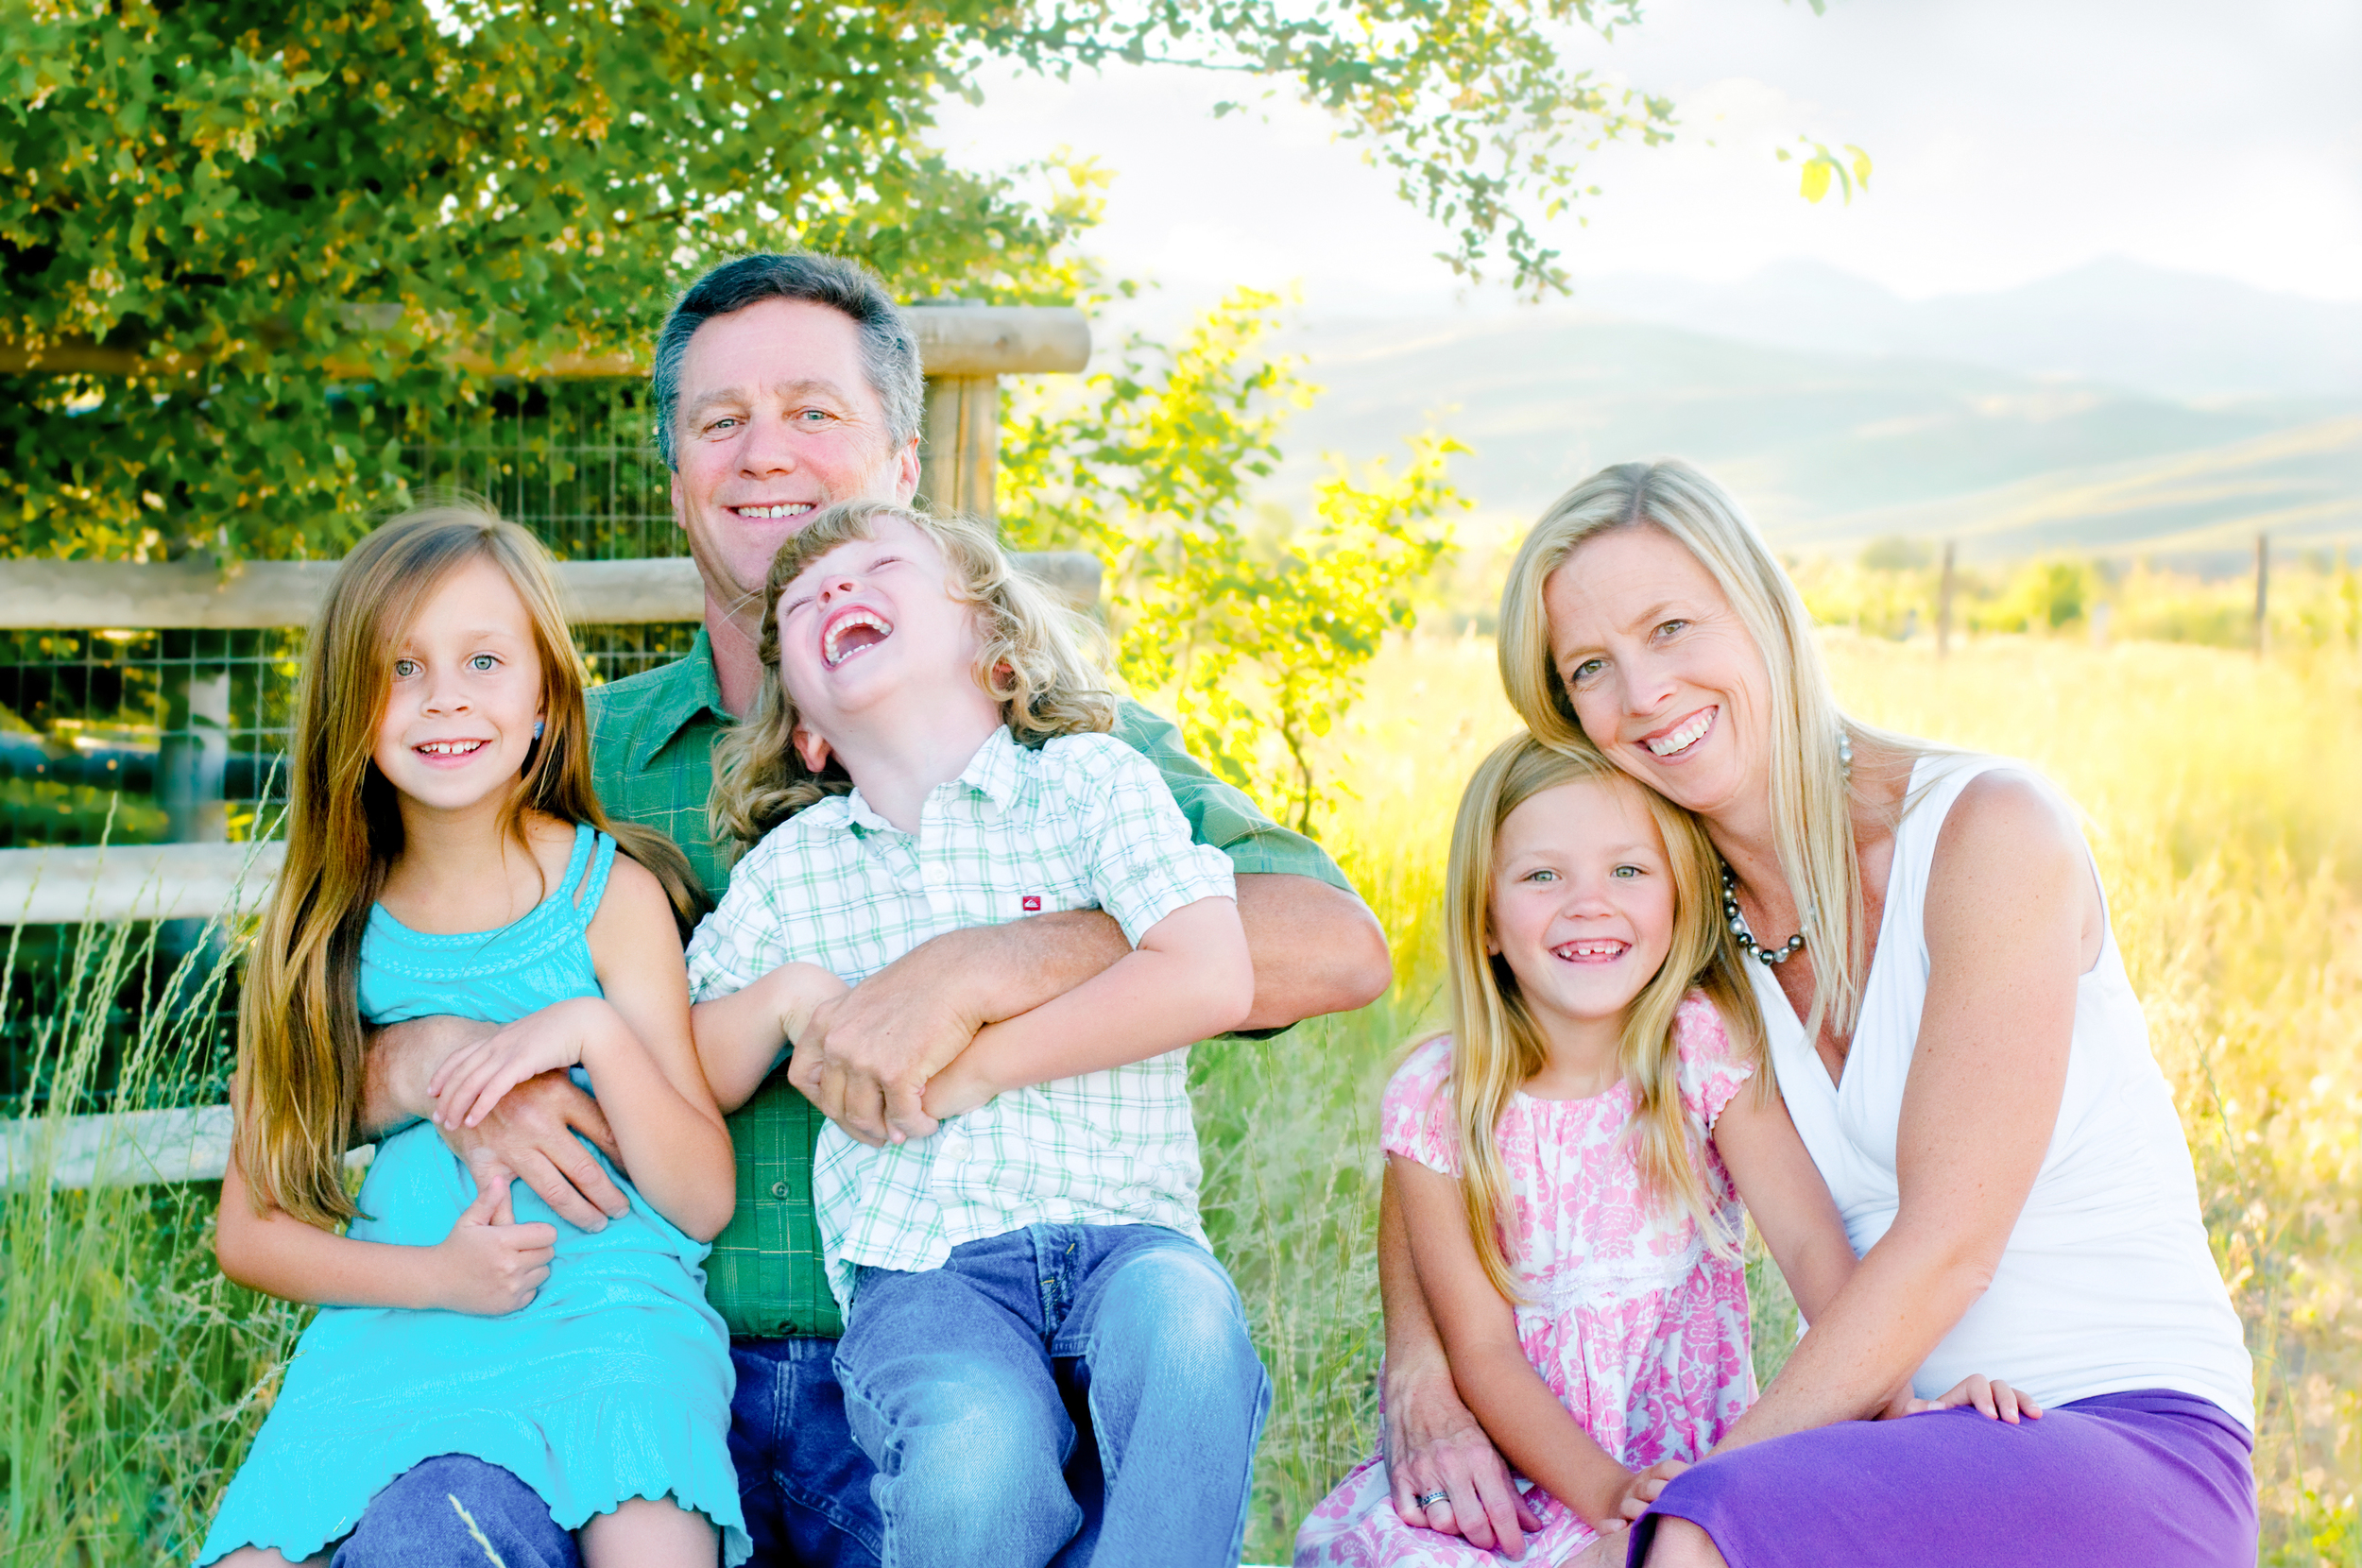 Ward Family Portraits - Idaho Family Photographer - Kristy Ambrogio - Forever Captured Images